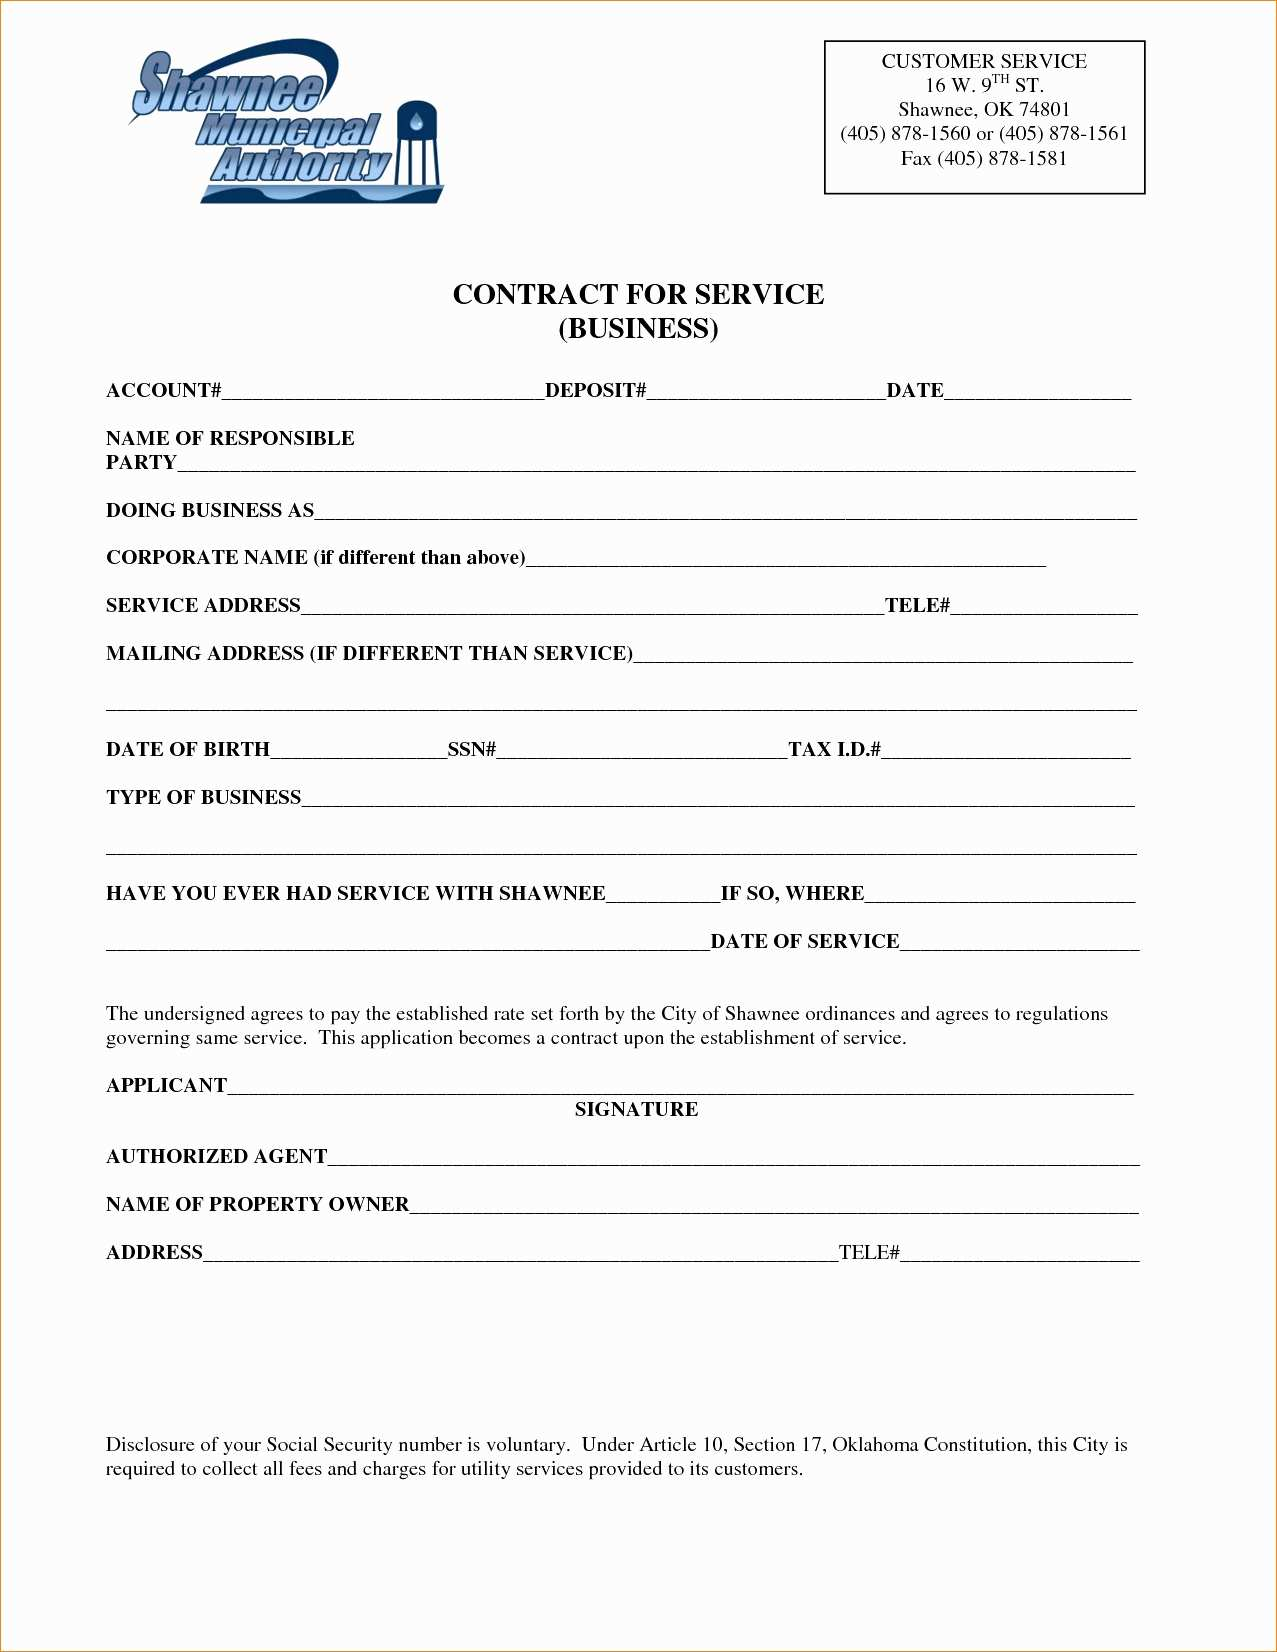 Shared Well Agreement Form 11360 Simple Profit Sharing Agreement Template New Simple Profit